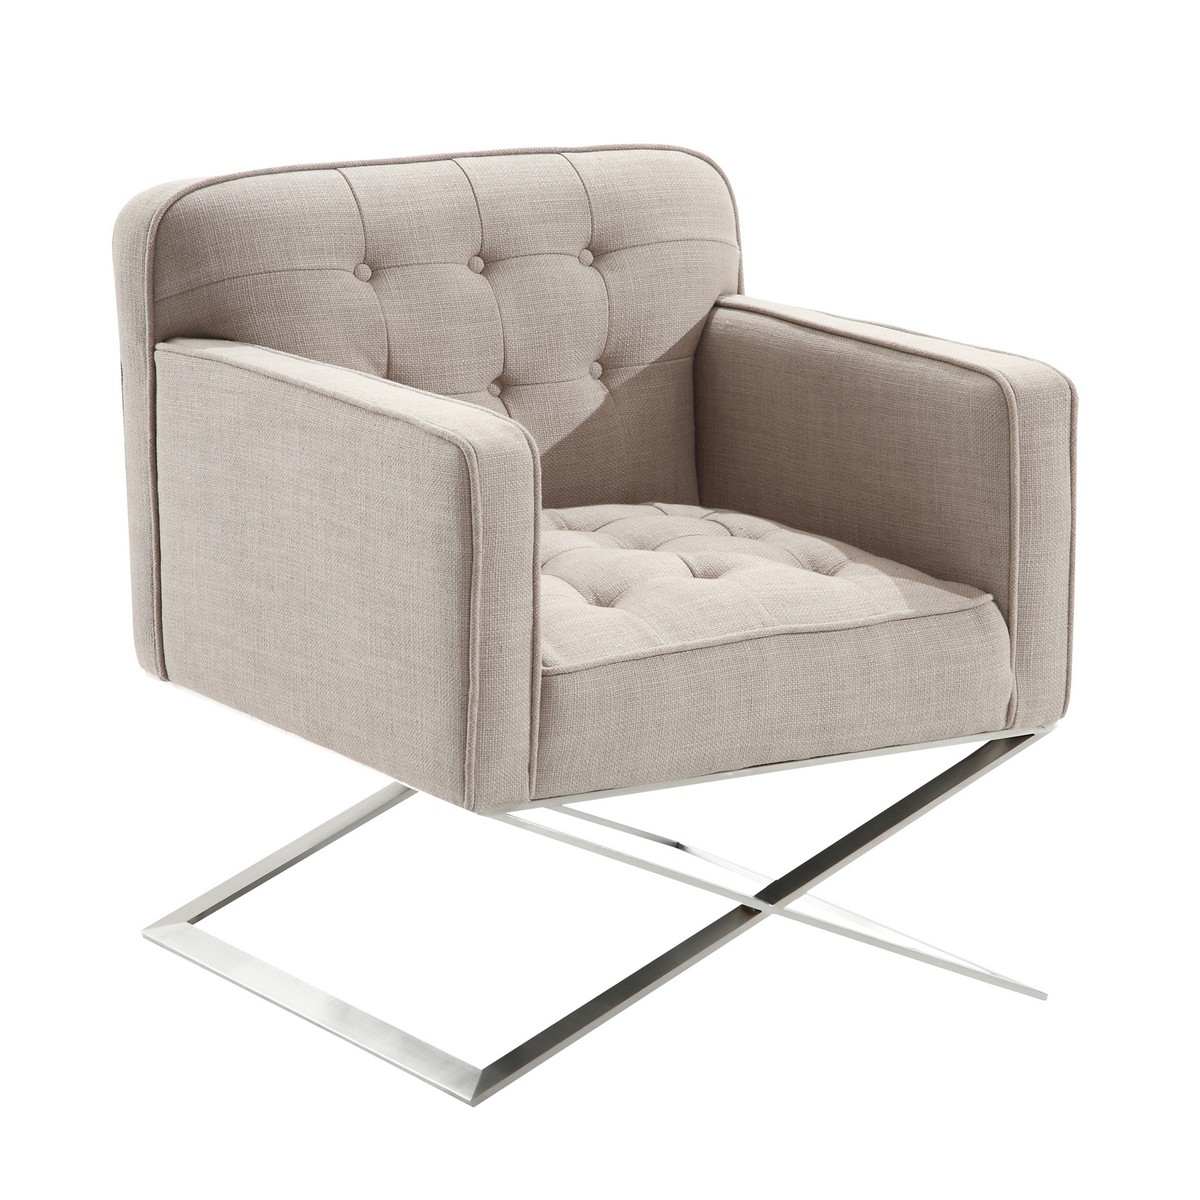 Armen Living Chilton Modern Chair In Gray Fabric and Steel Finish